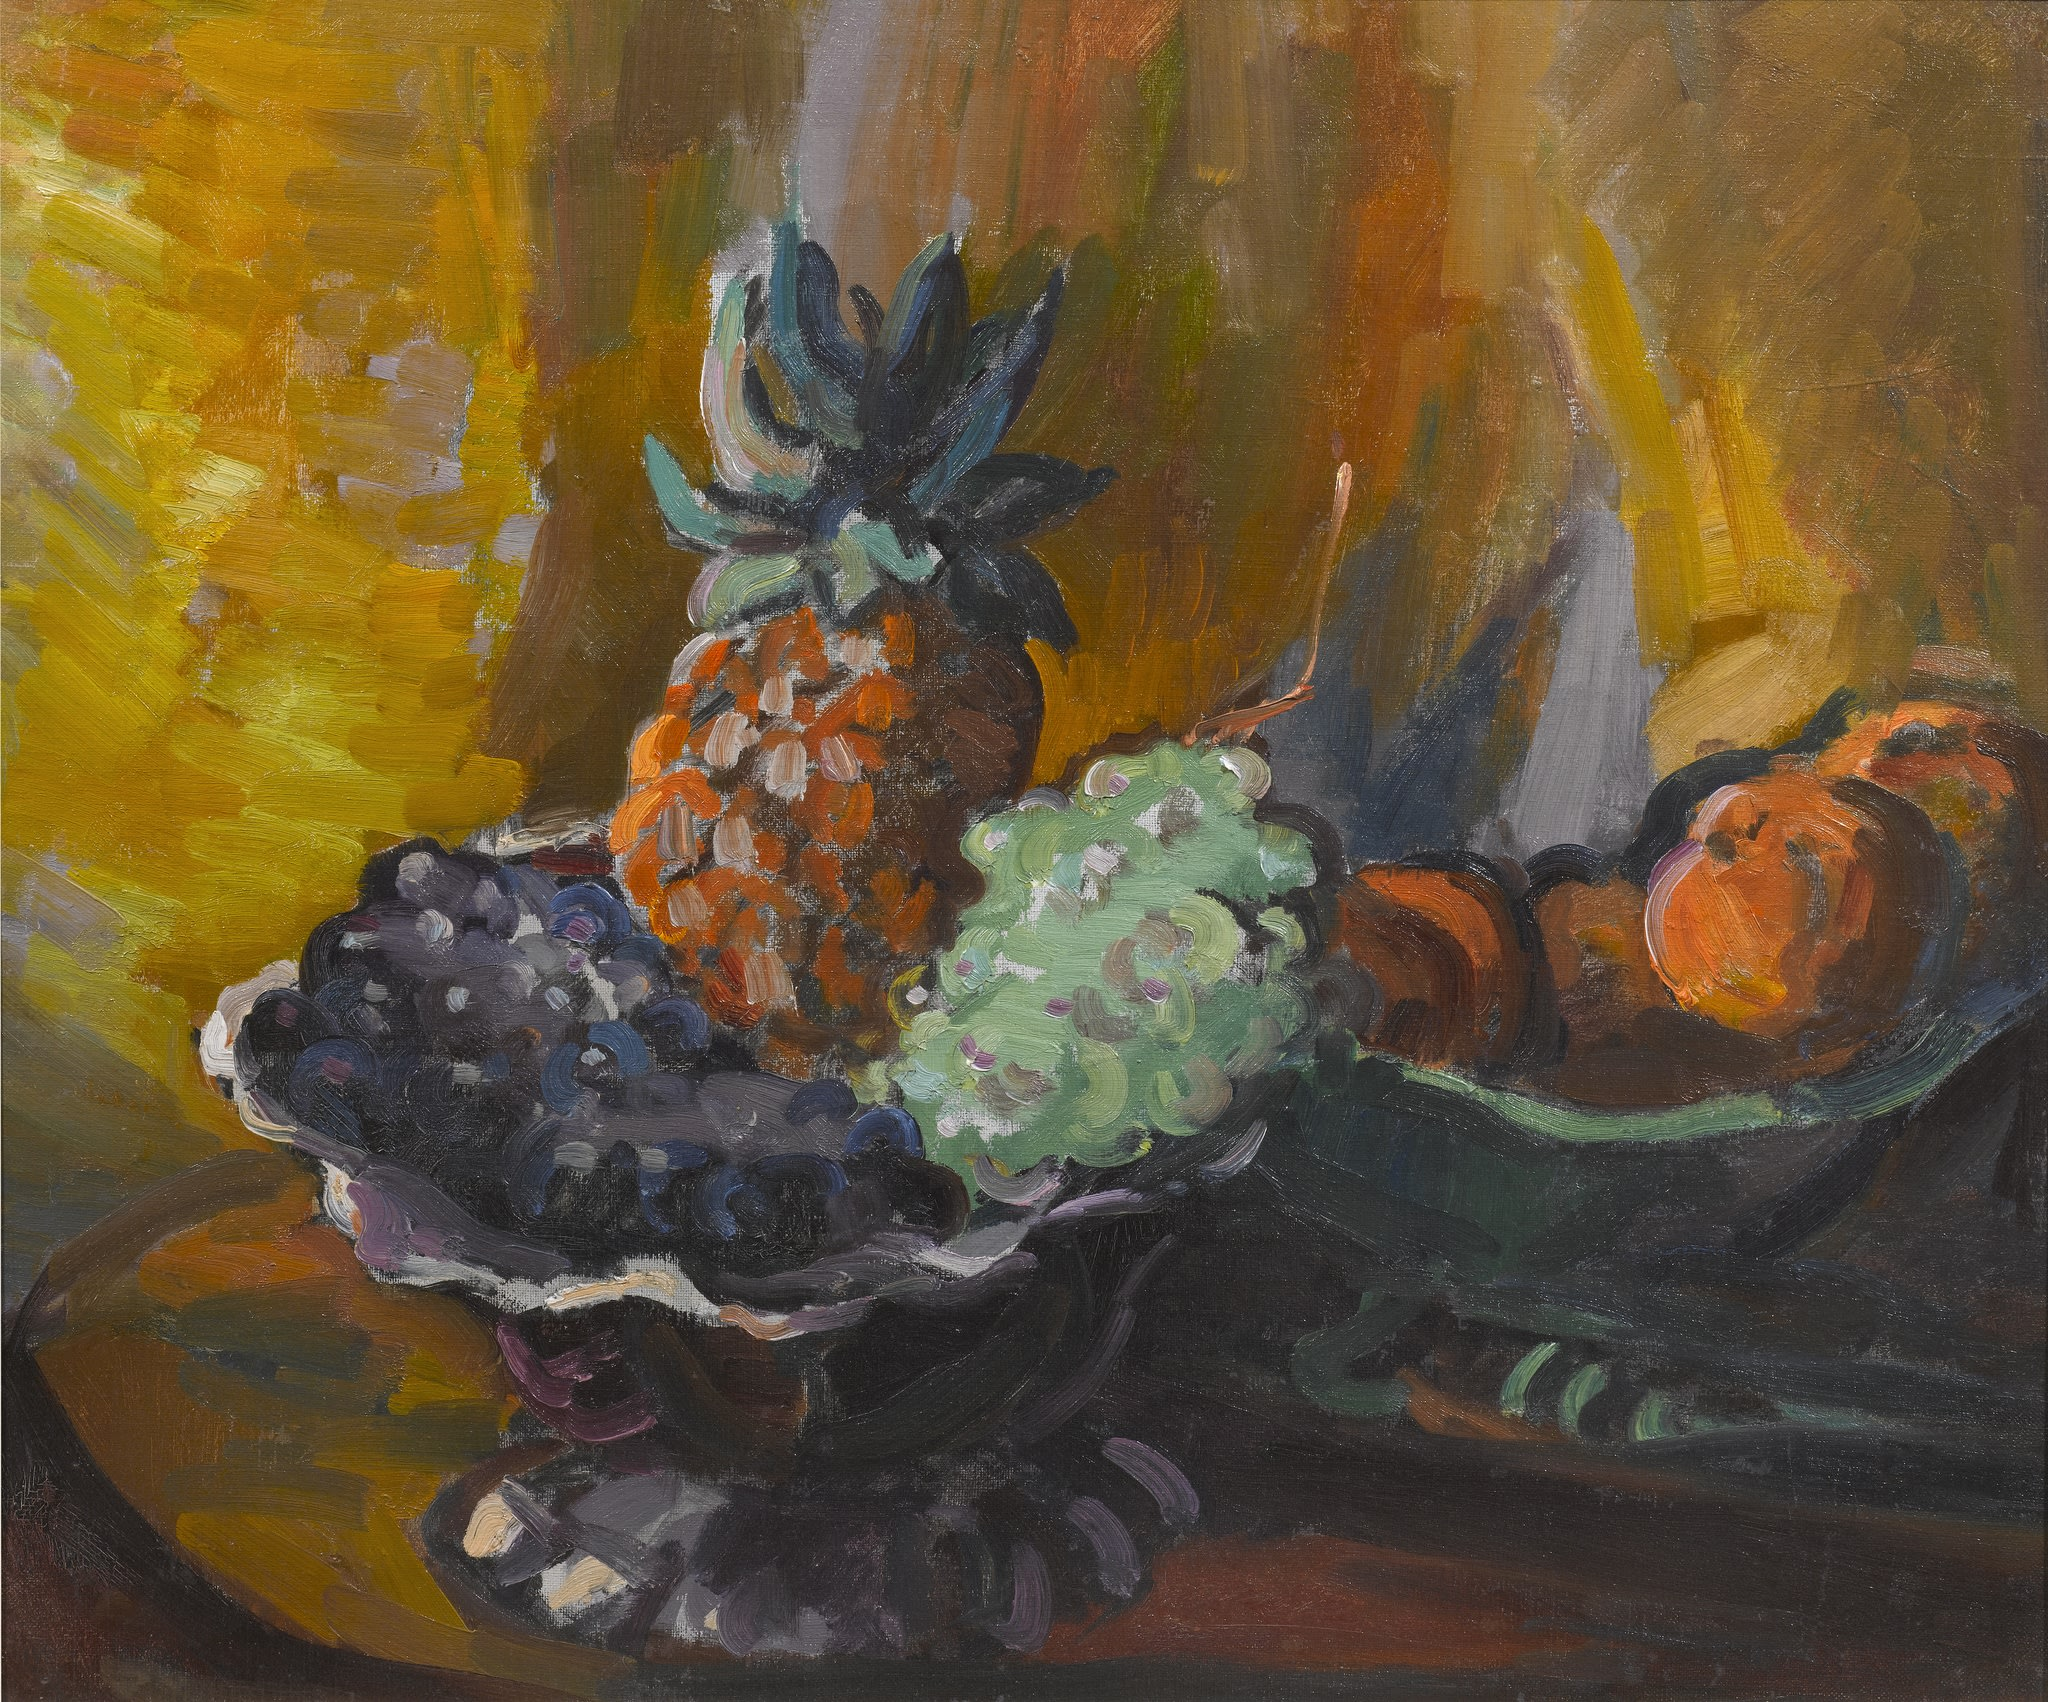 """<span class=""""link fancybox-details-link""""><a href=""""/artists/27-harry-phelan-gibb/works/11-harry-phelan-gibb-still-life-with-pineapple-c.1930/"""">View Detail Page</a></span><div class=""""artist""""><strong>Harry Phelan Gibb</strong></div> 1870 - 1948 <div class=""""title""""><em>Still Life with Pineapple</em>, c.1930</div> <div class=""""medium"""">Oil on Canvas</div> <div class=""""dimensions"""">11 1/2 x 18 3/4 in<br />29.2 x 47.6 cm</div>"""